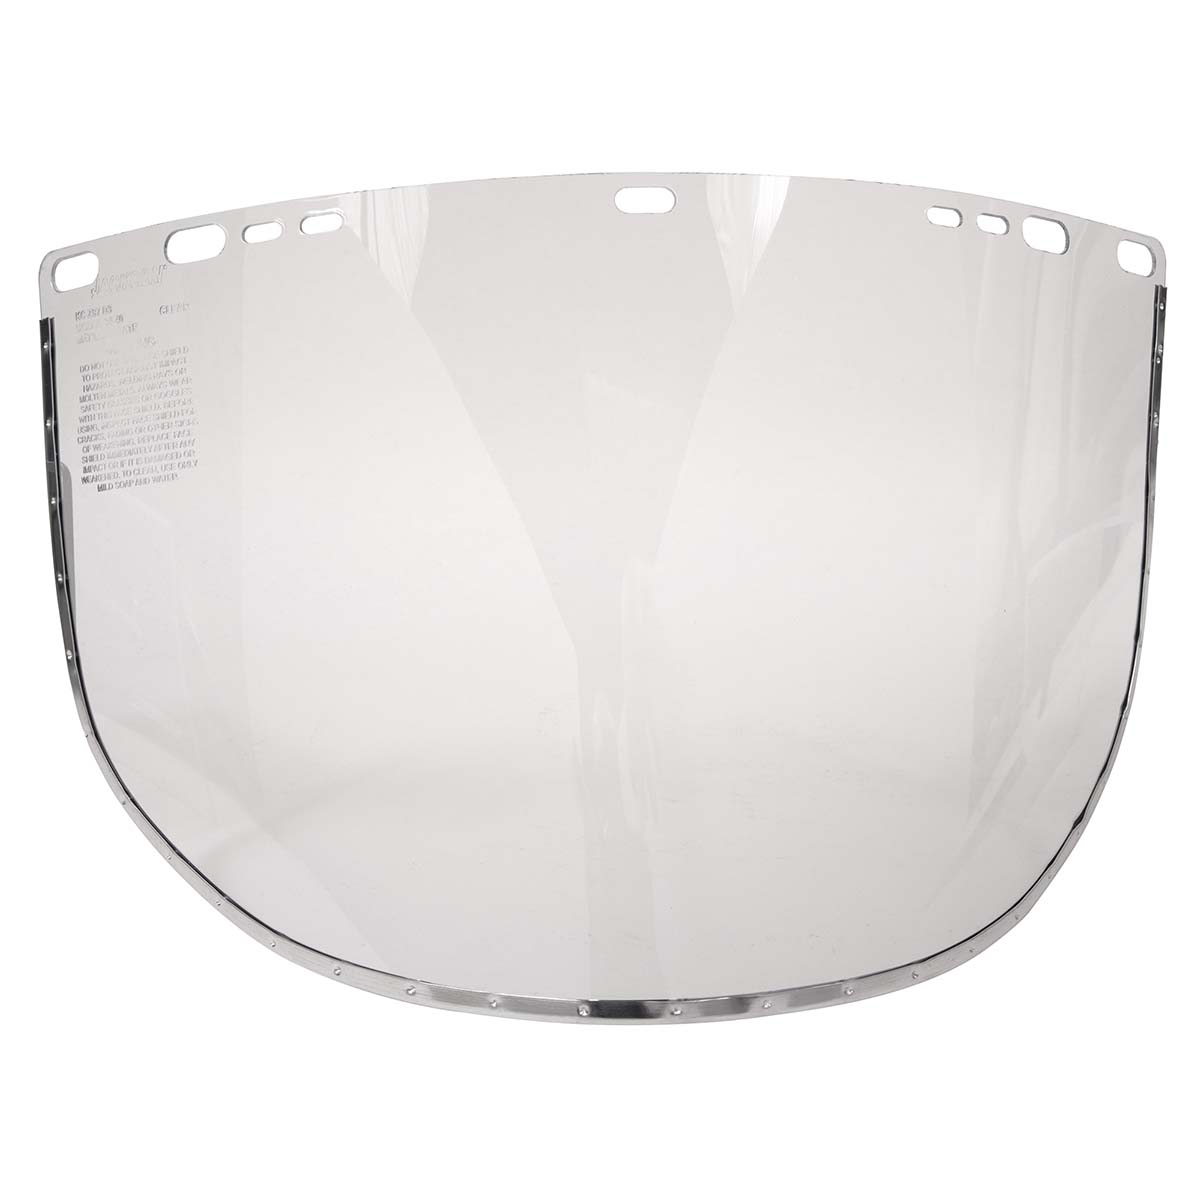 "Jackson Safety F30 Acetate Face Shield (29079), 9"" x 15.5"" Clear, Reusable Face Protection, 24 Shields / Case"